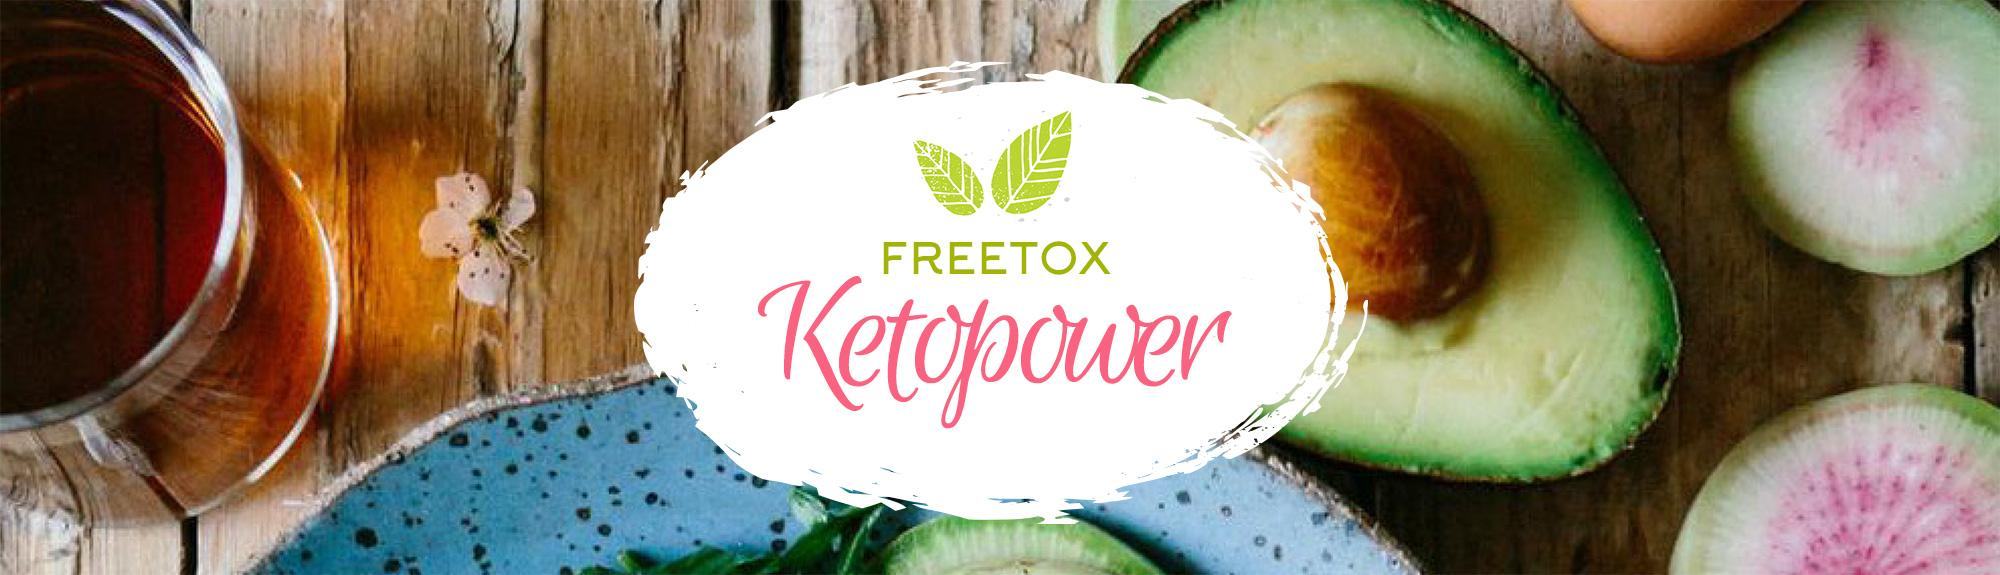 Freetox Ketopower